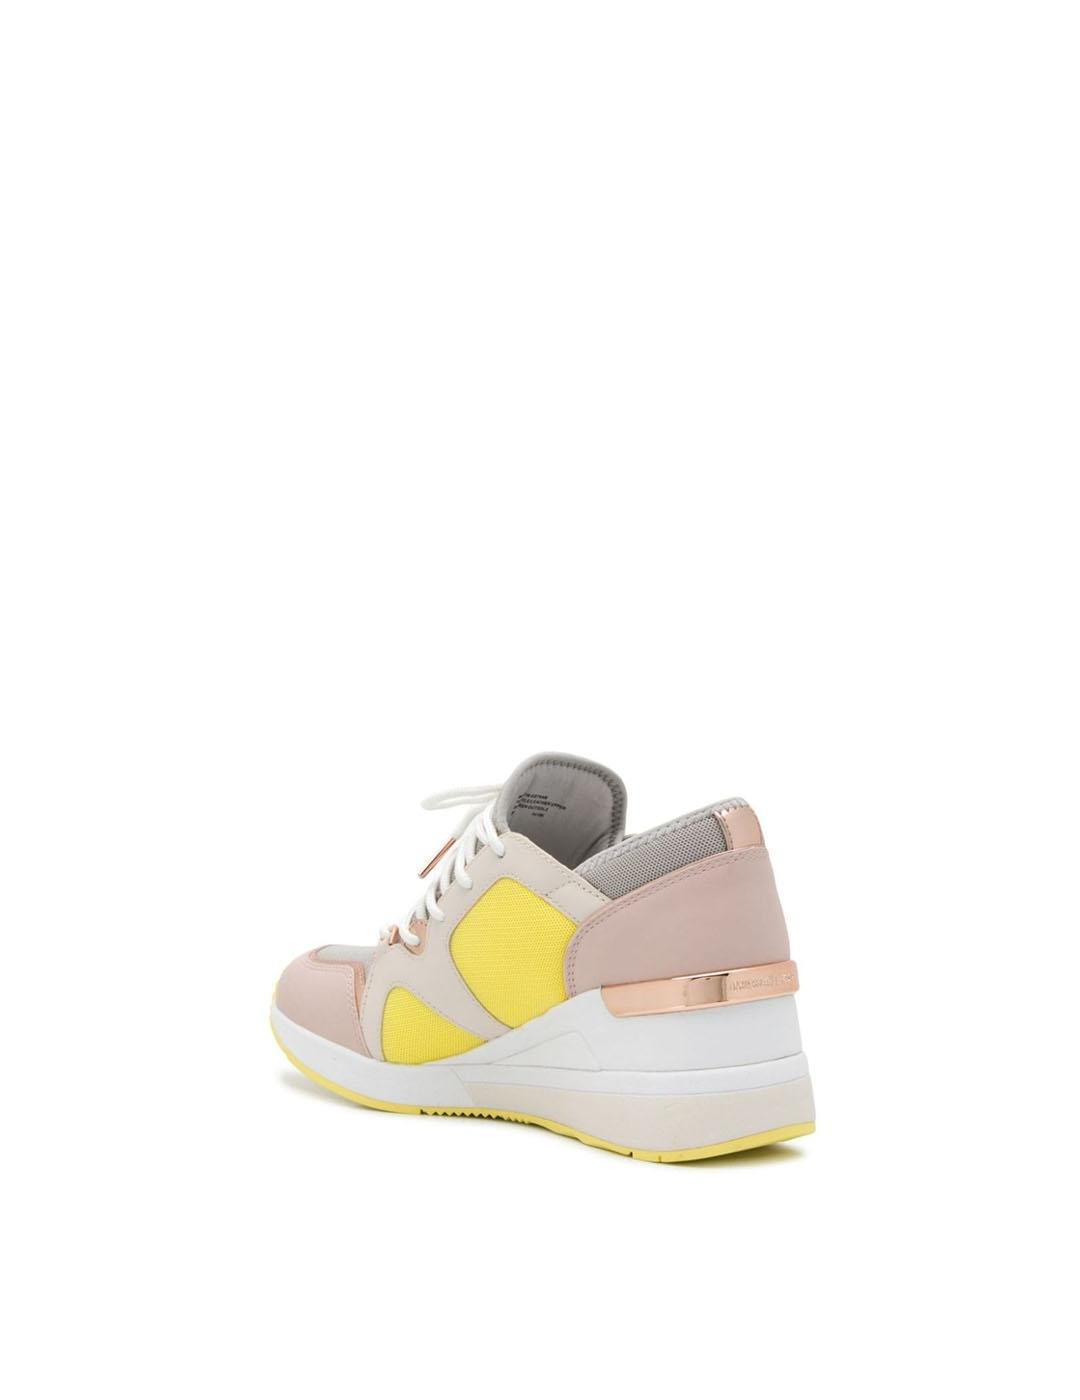 Sneakers Michael Kors rosa multicolor Liv Trainer Mesh